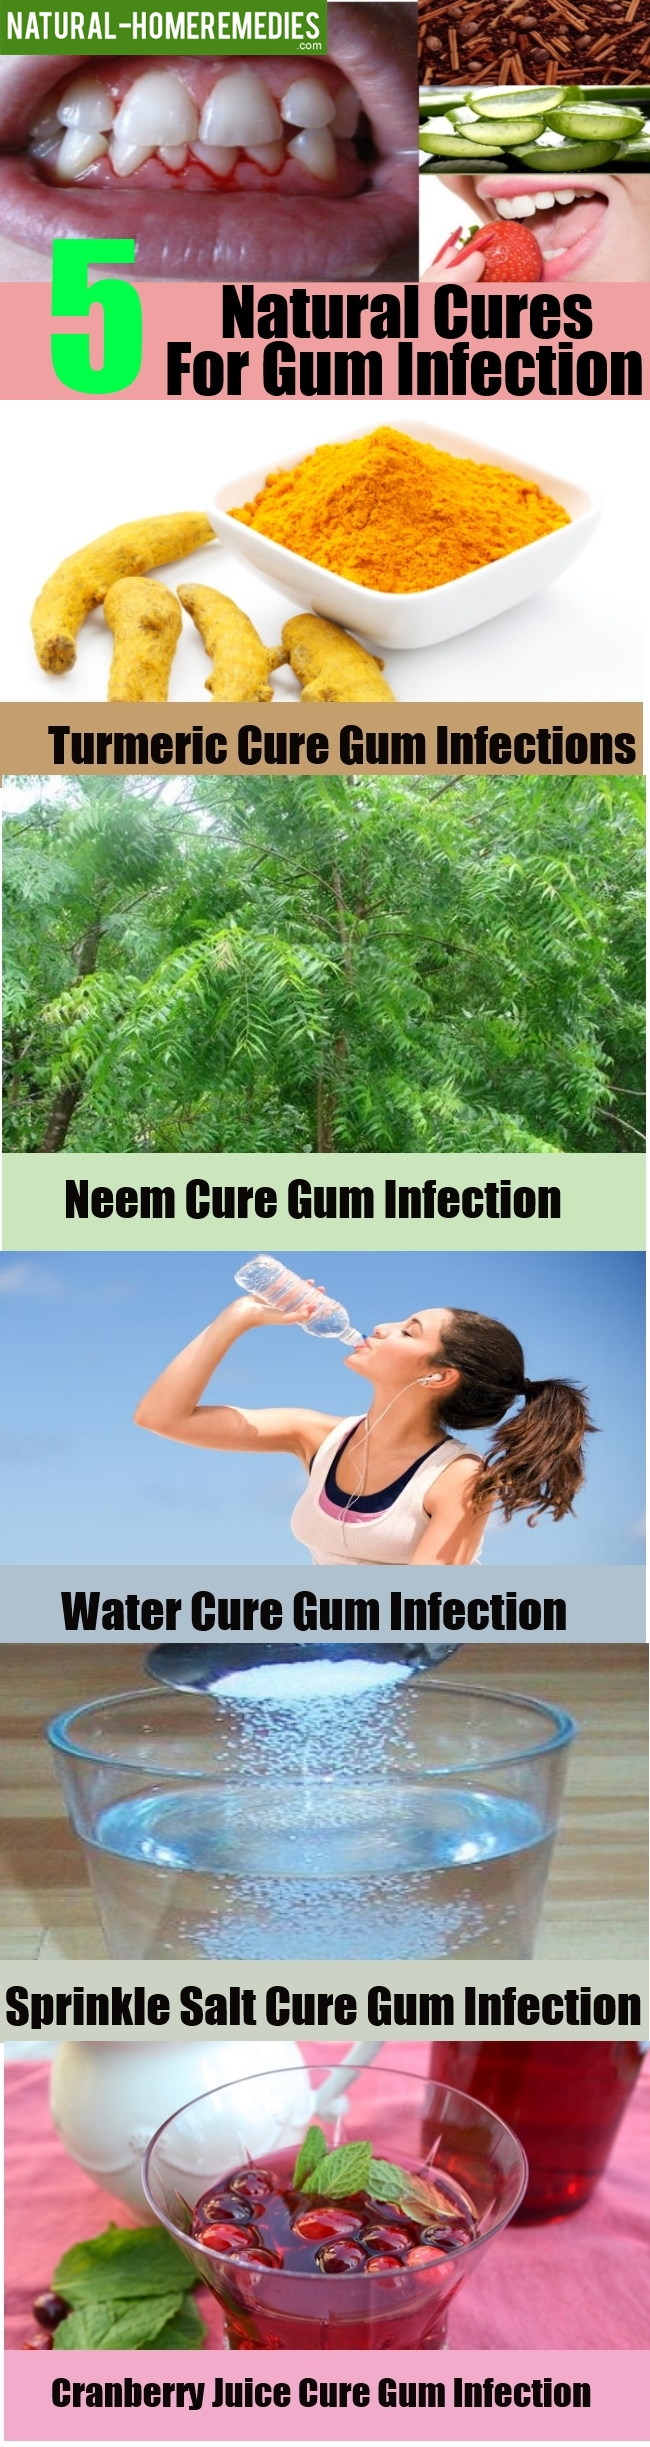 5 Natural Cures For Gum Infection